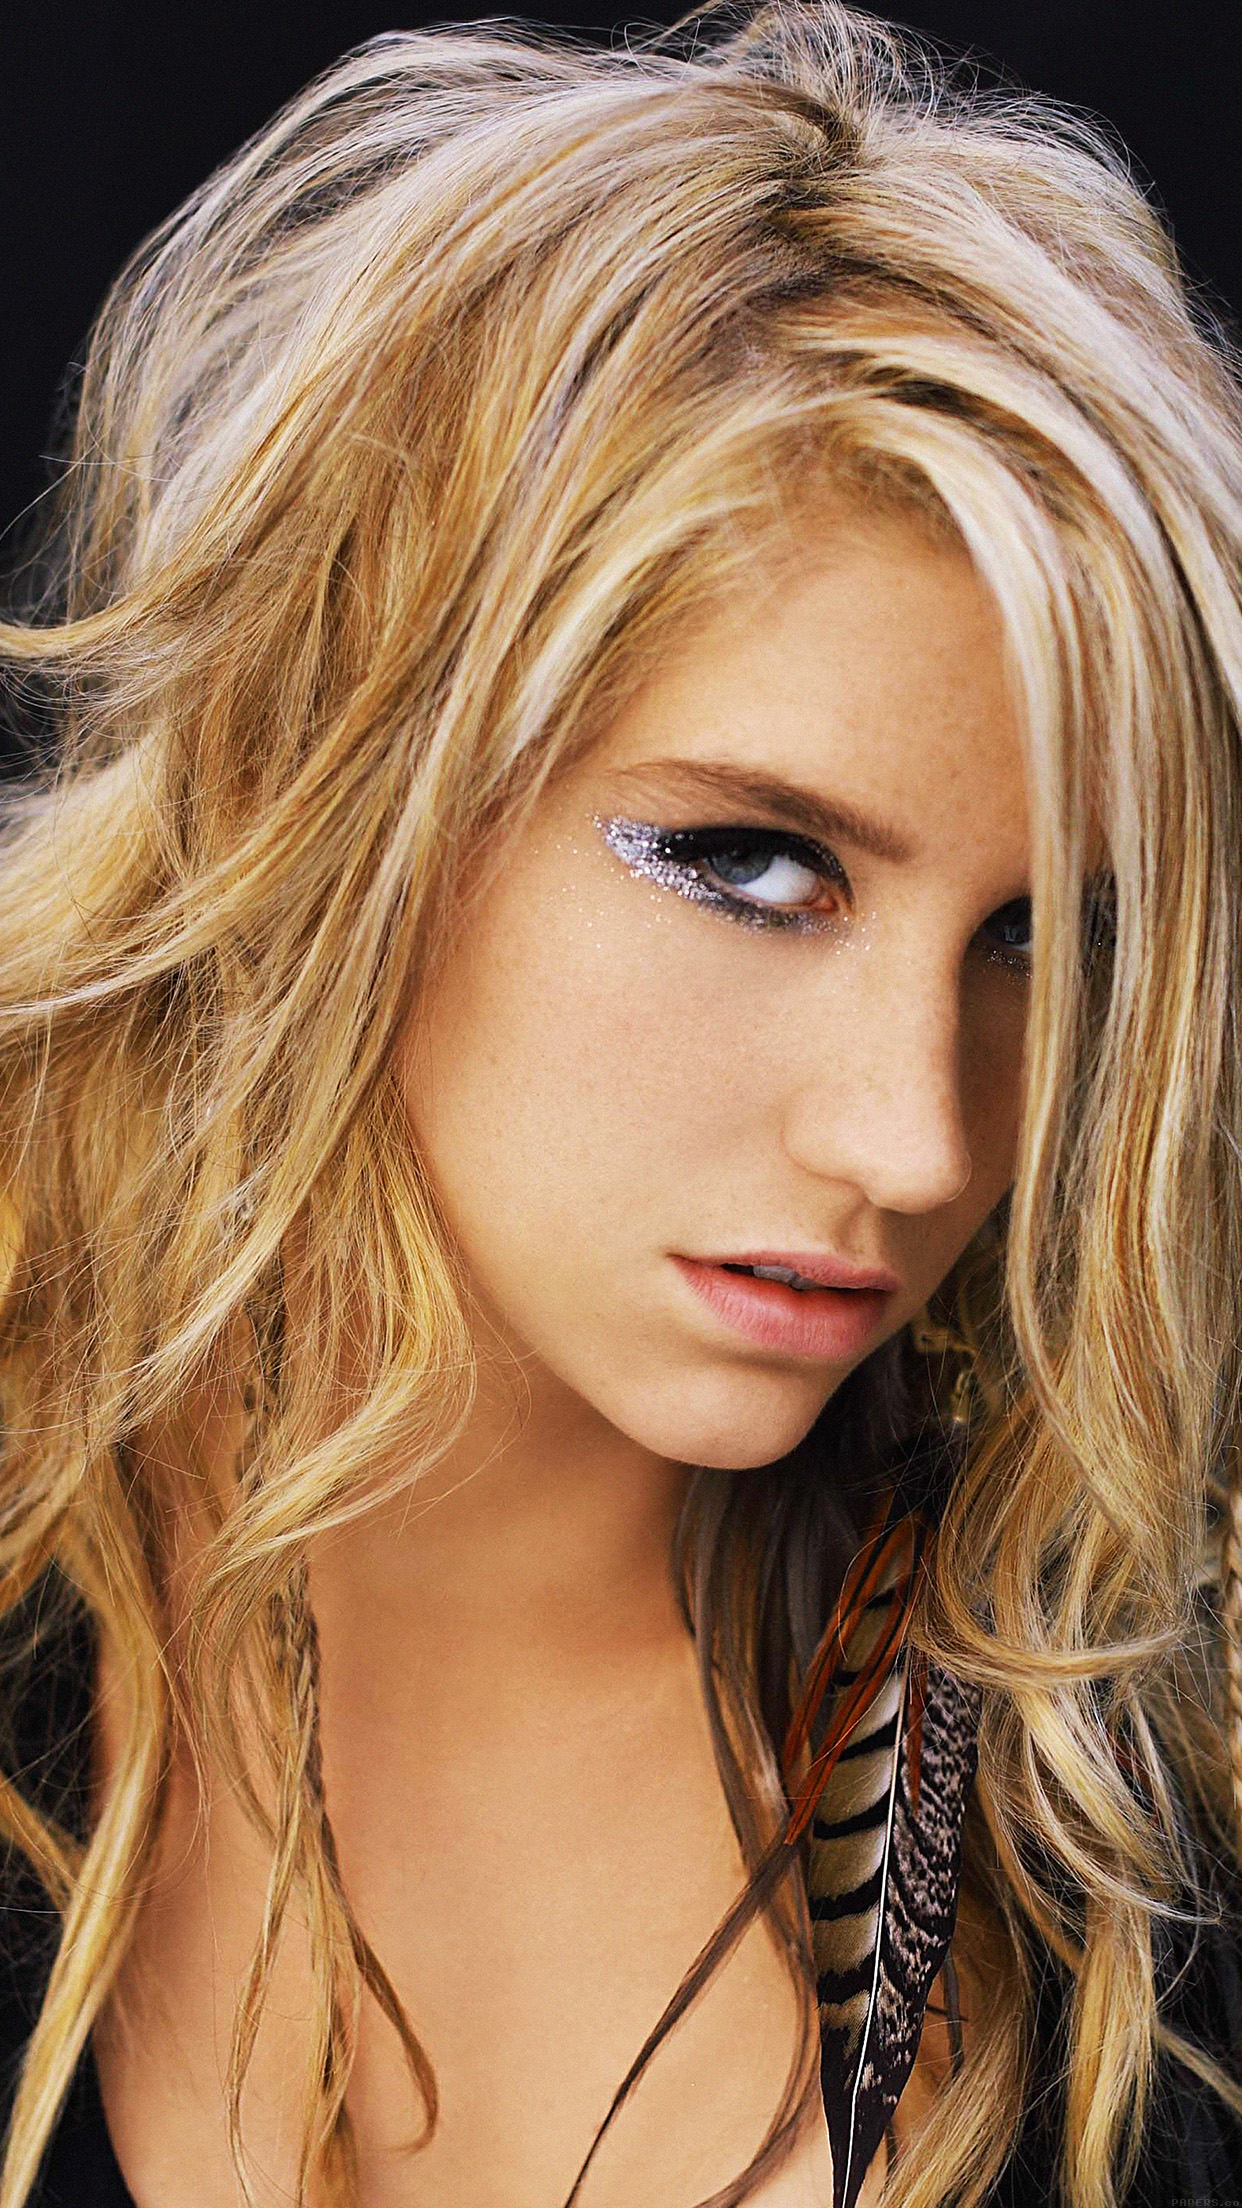 Kesha Singer Pop Artist Celebrity Music Android wallpaper